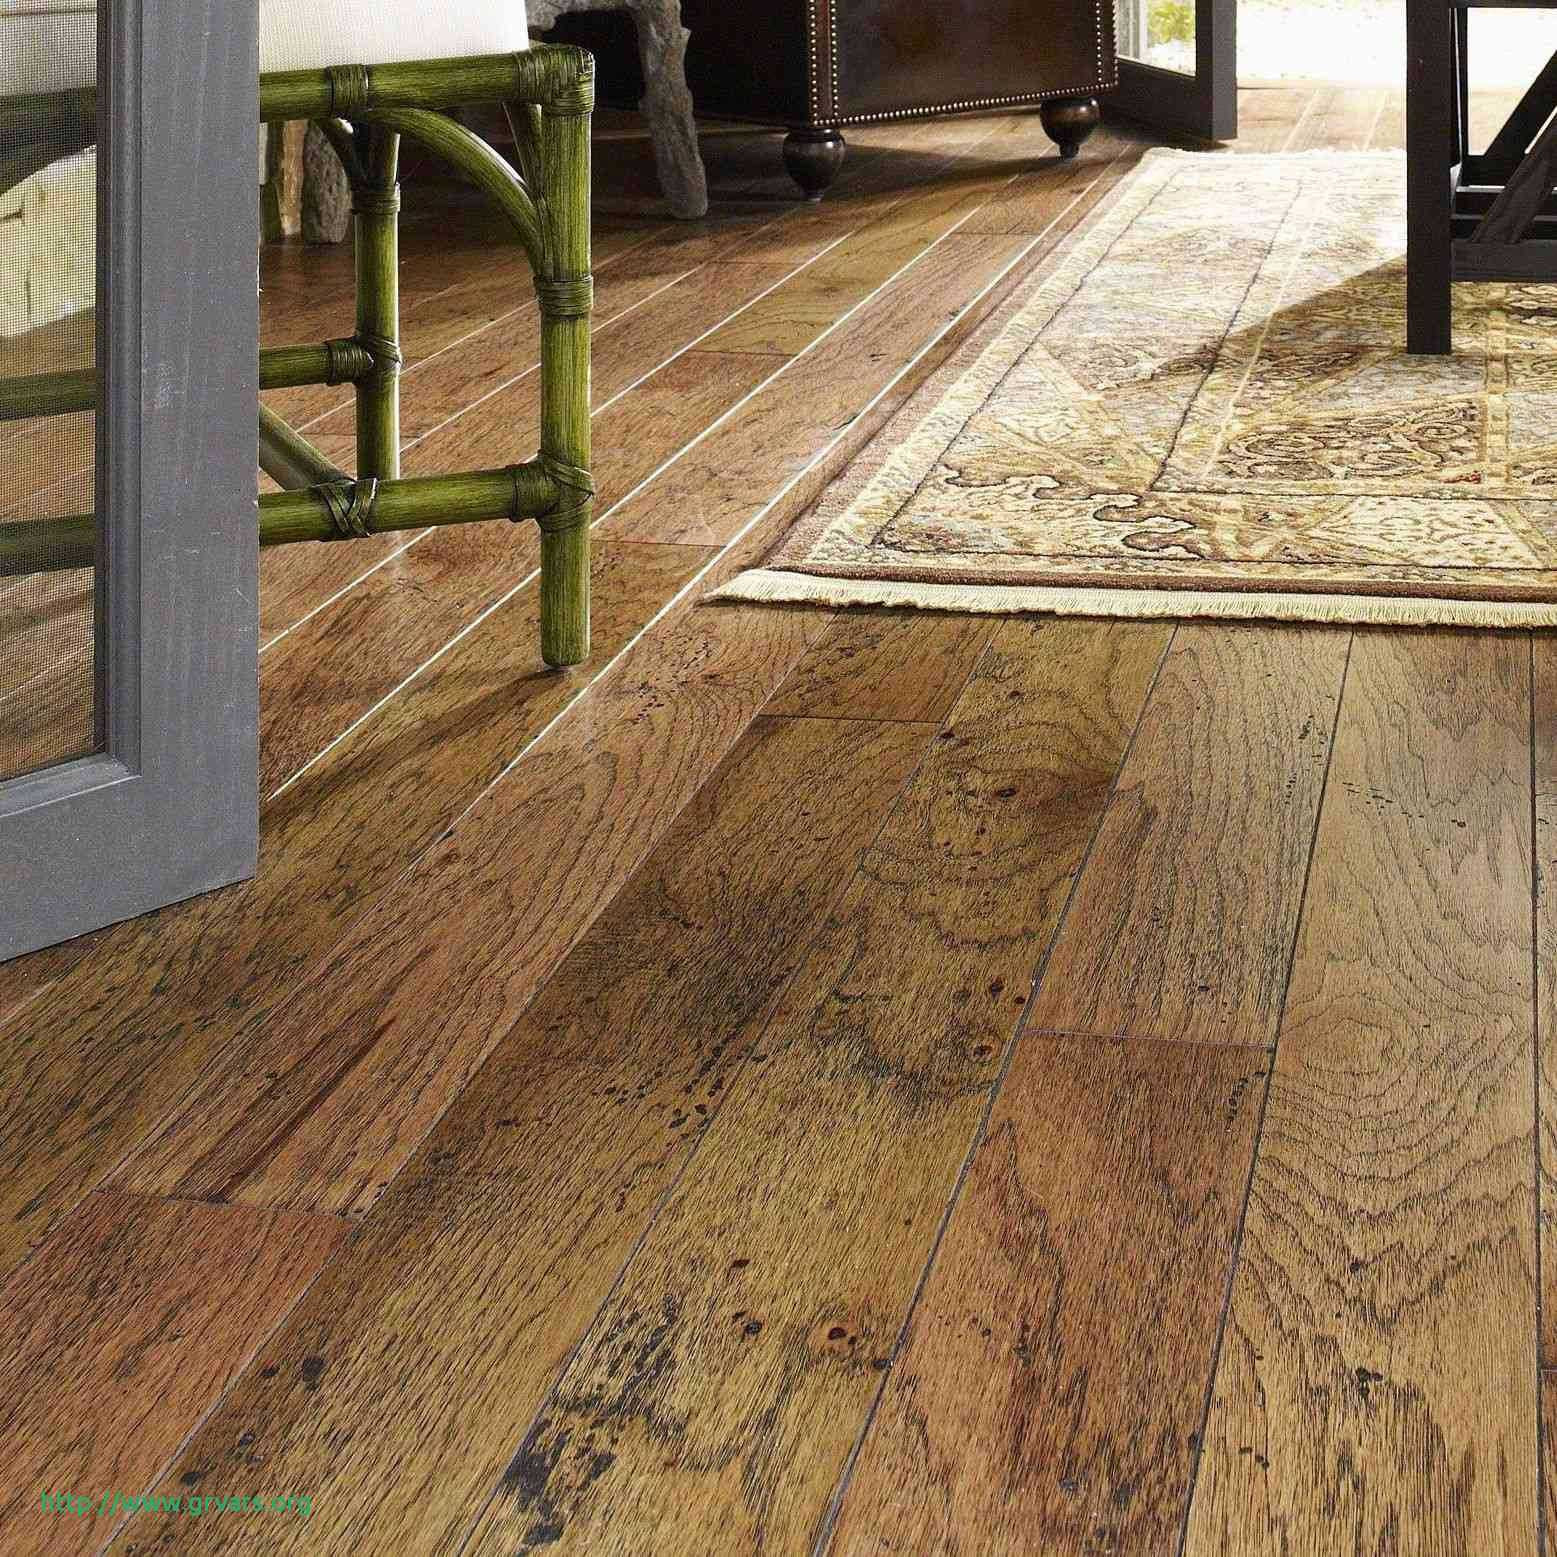 bruce hardwood flooring by armstrong of 23 frais how much is a hardwood floor ideas blog with hardwood floor designs new best type wood flooring best floor floor wood floor wood 0d